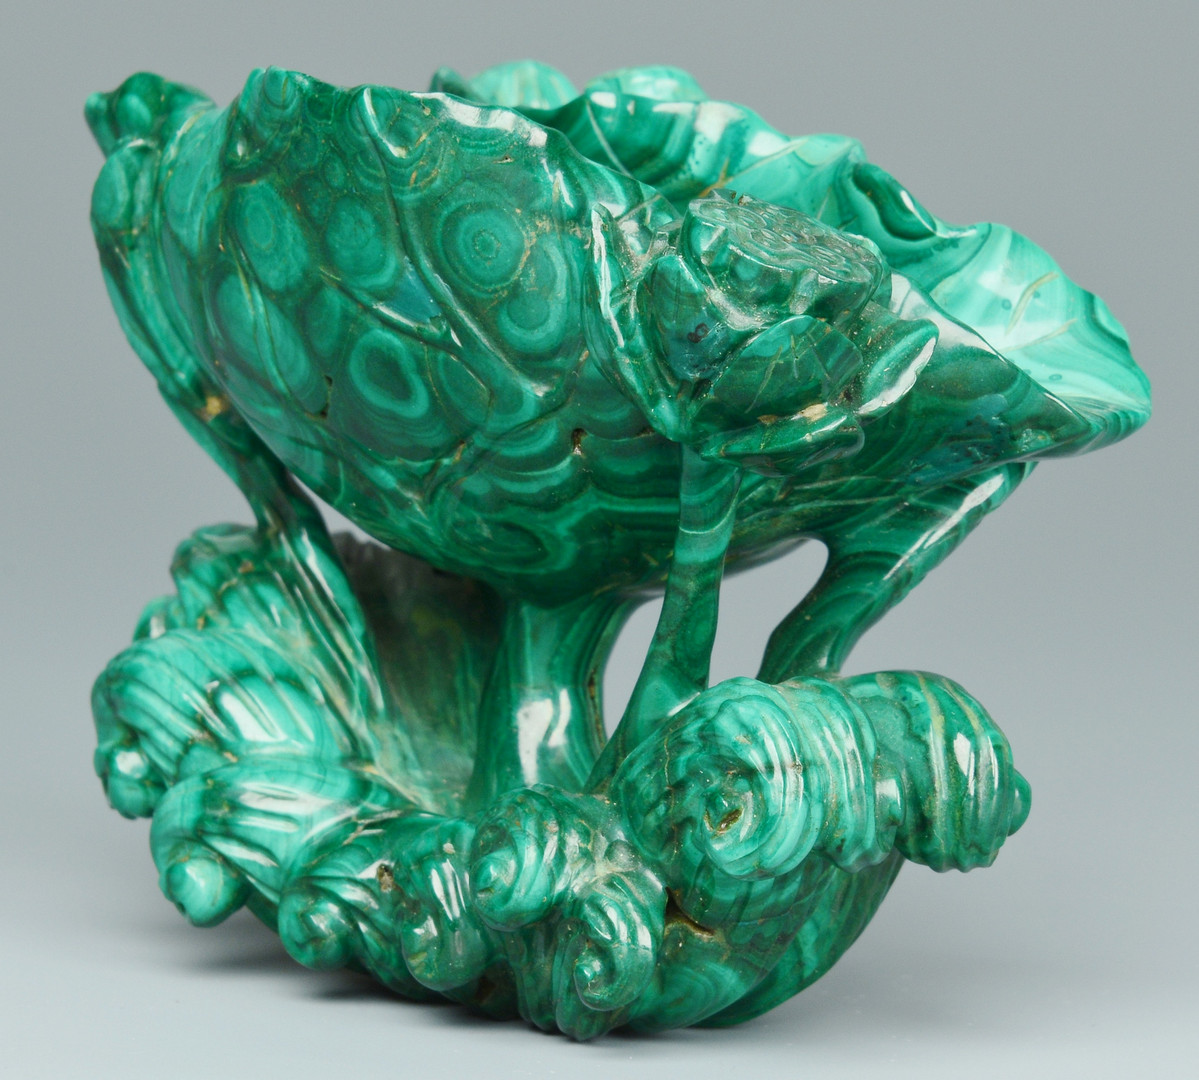 Lot 20: Malachite Libation Cup w/ Frog & Floral Carving